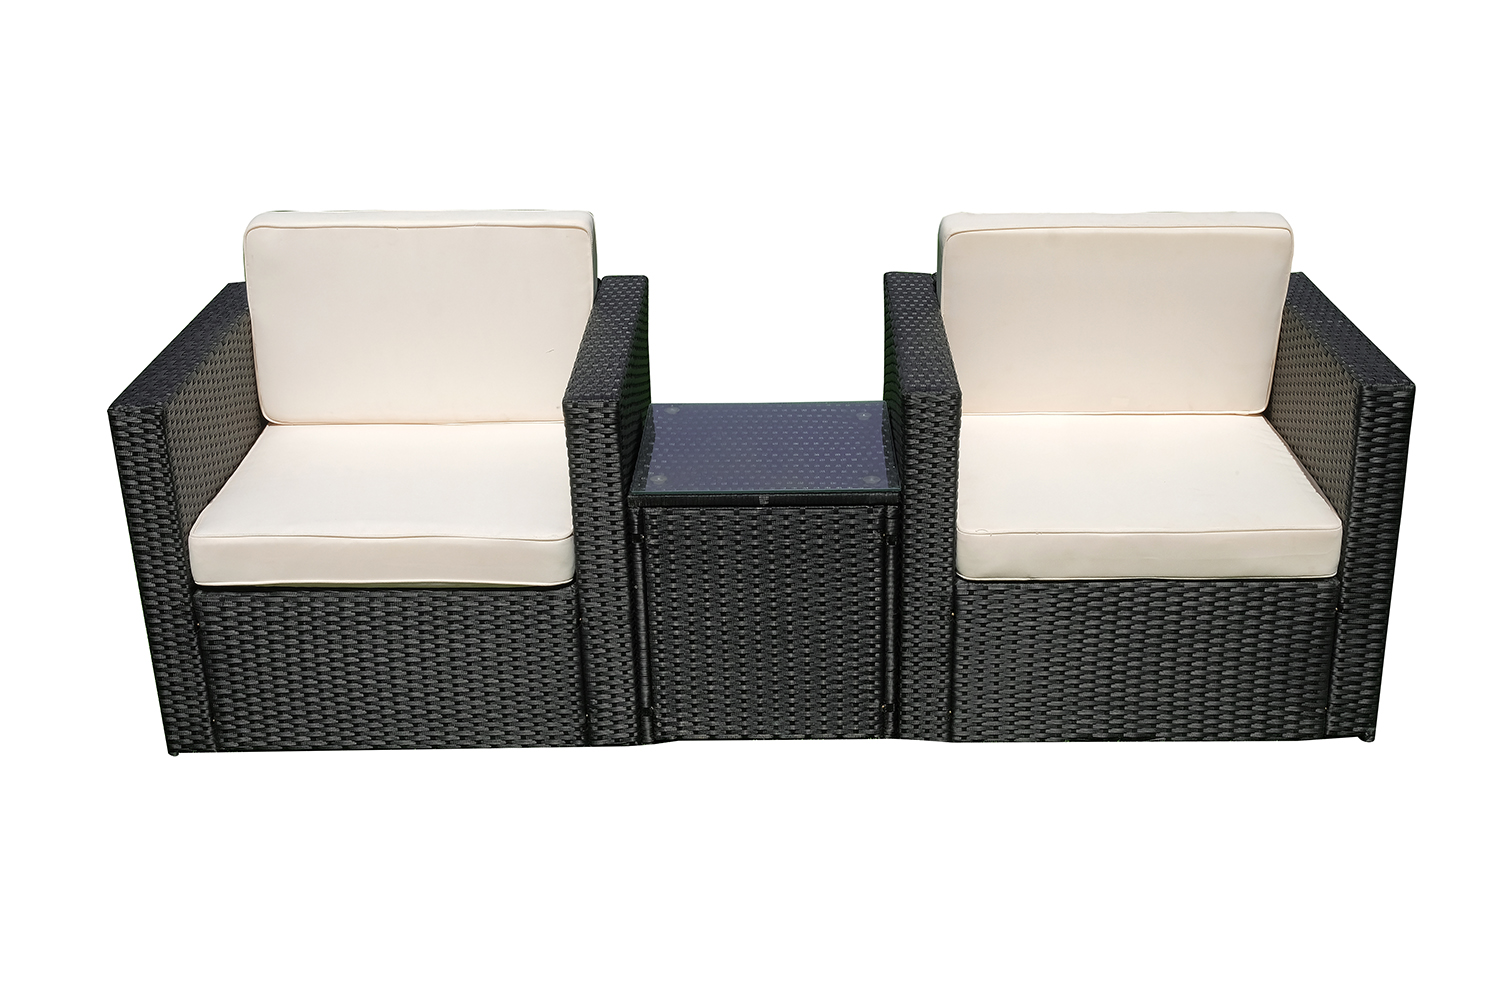 mcombo 7tlg poly rattan gartenm bel sitzgarnitur. Black Bedroom Furniture Sets. Home Design Ideas